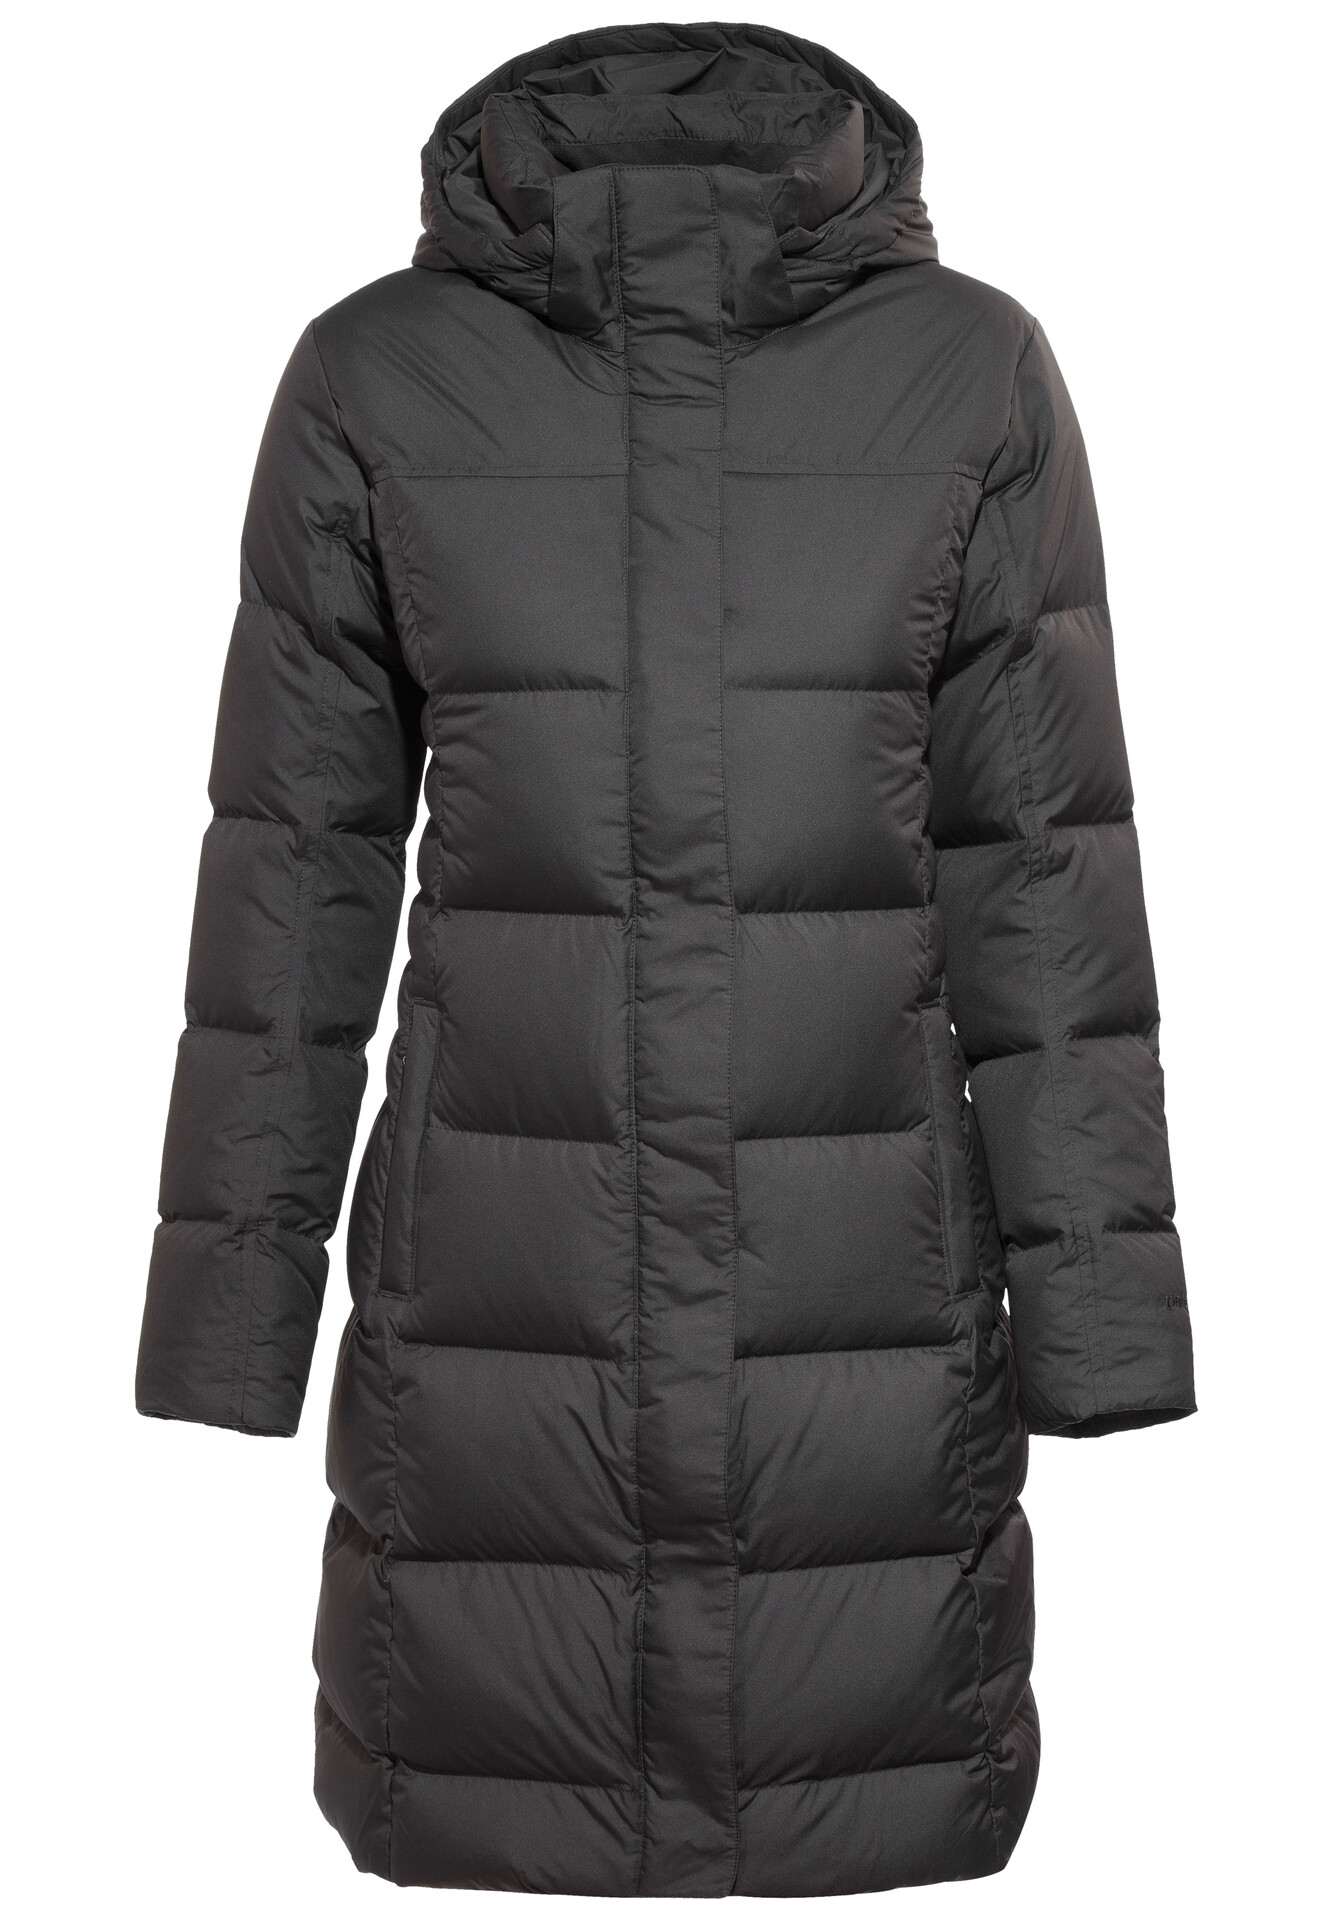 Patagonia Mujer Campz es Down Negro Chaqueta It With rPr8pS